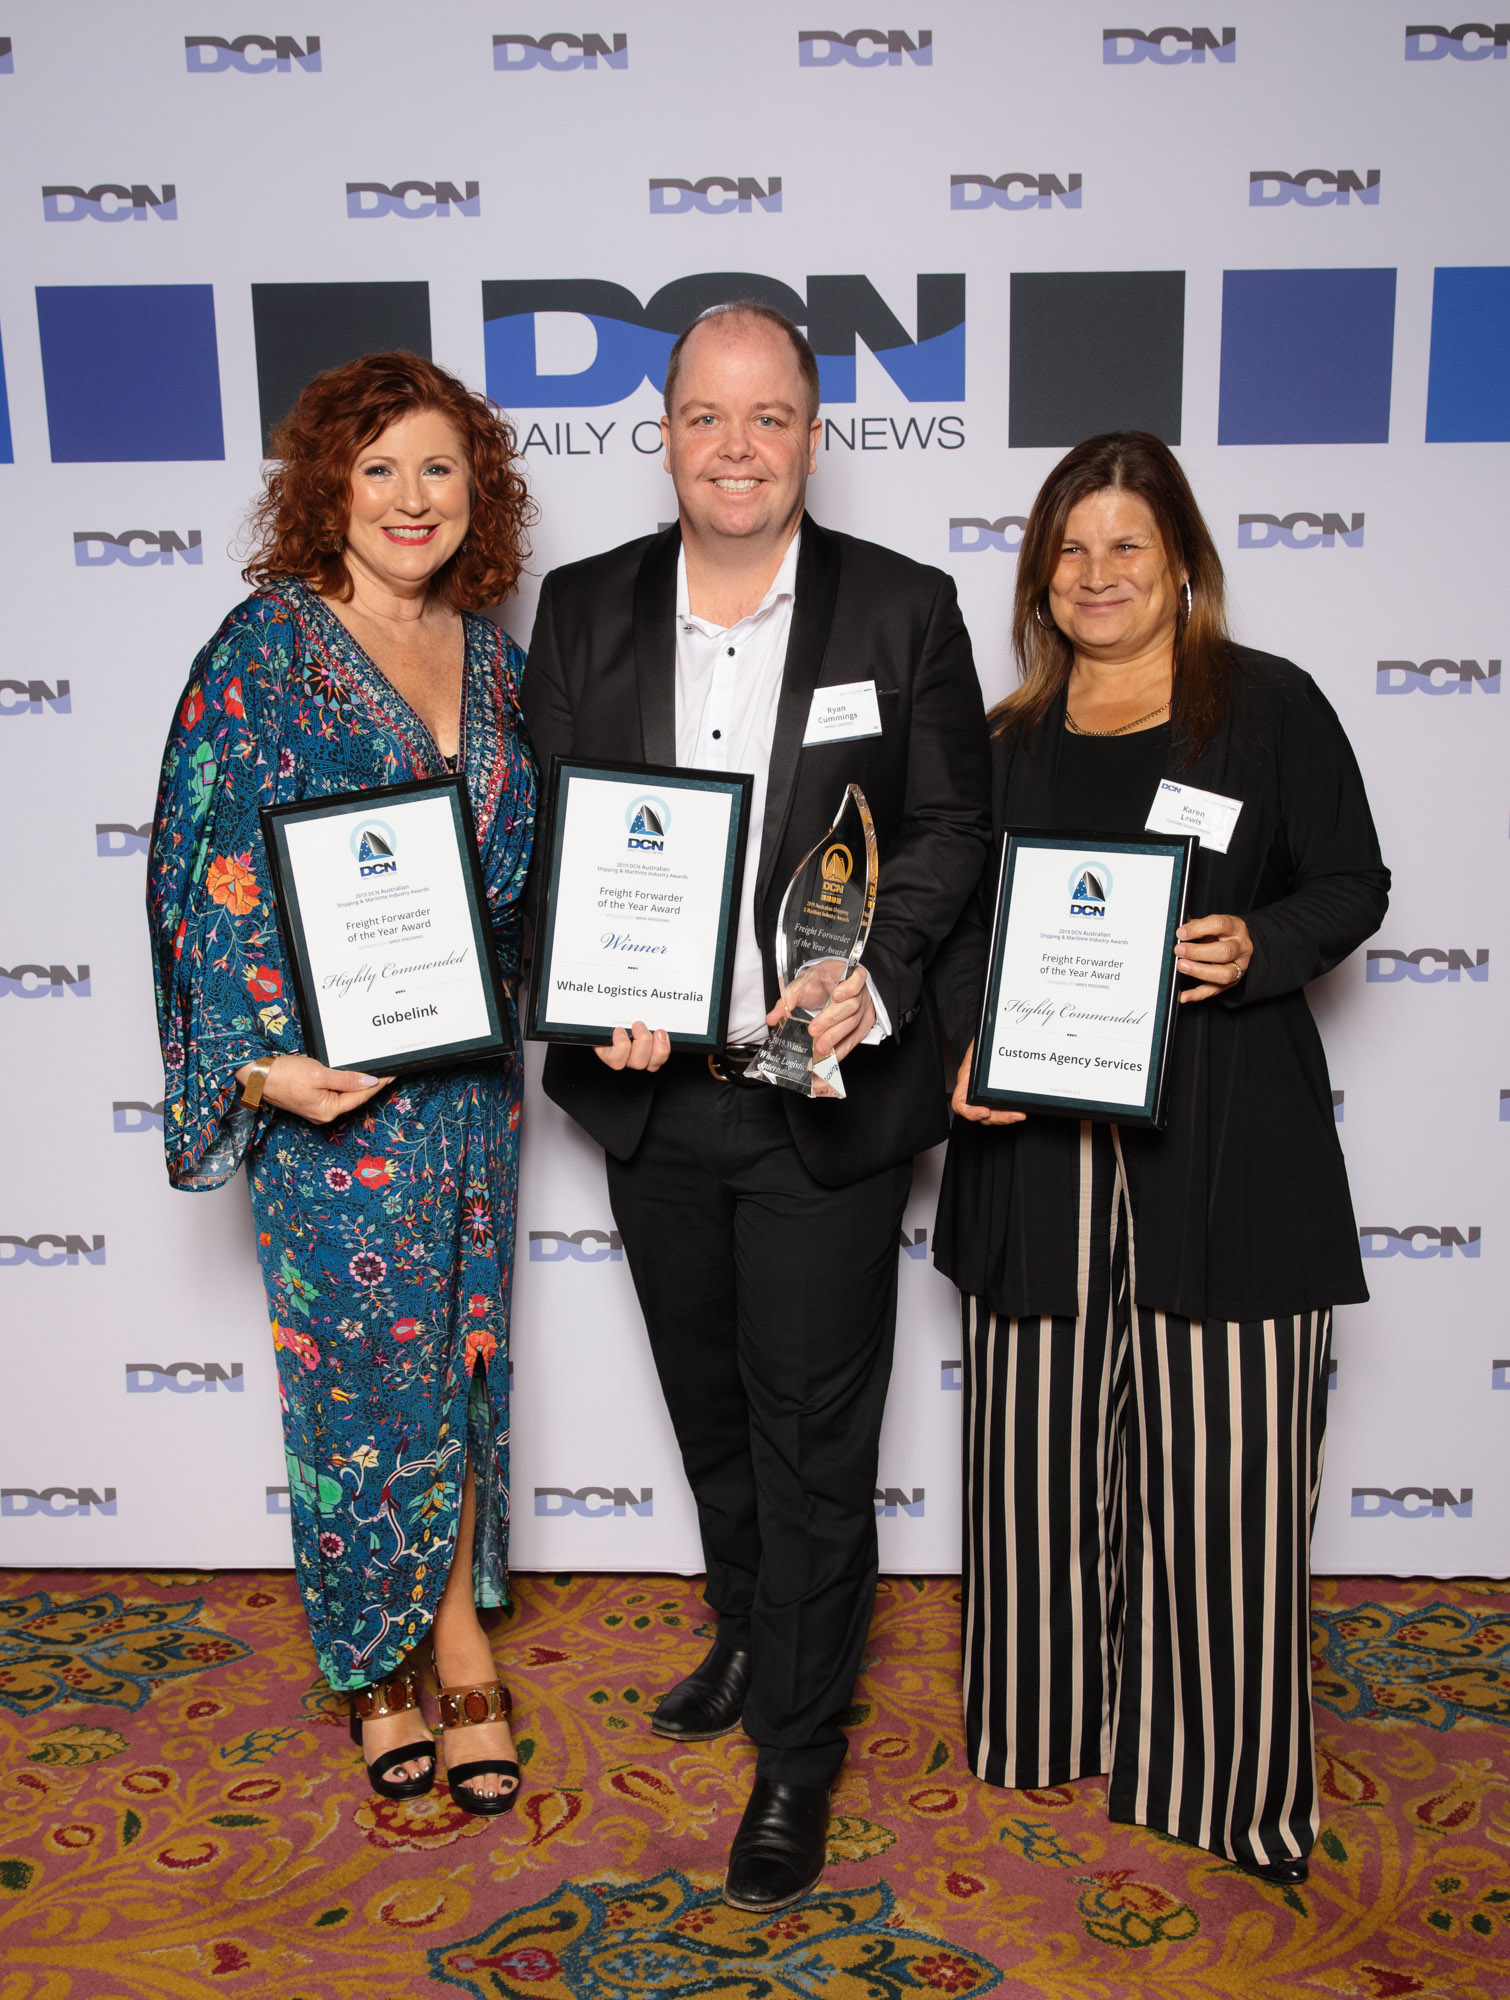 Freight Forwarder of the Year DCN Awards 2